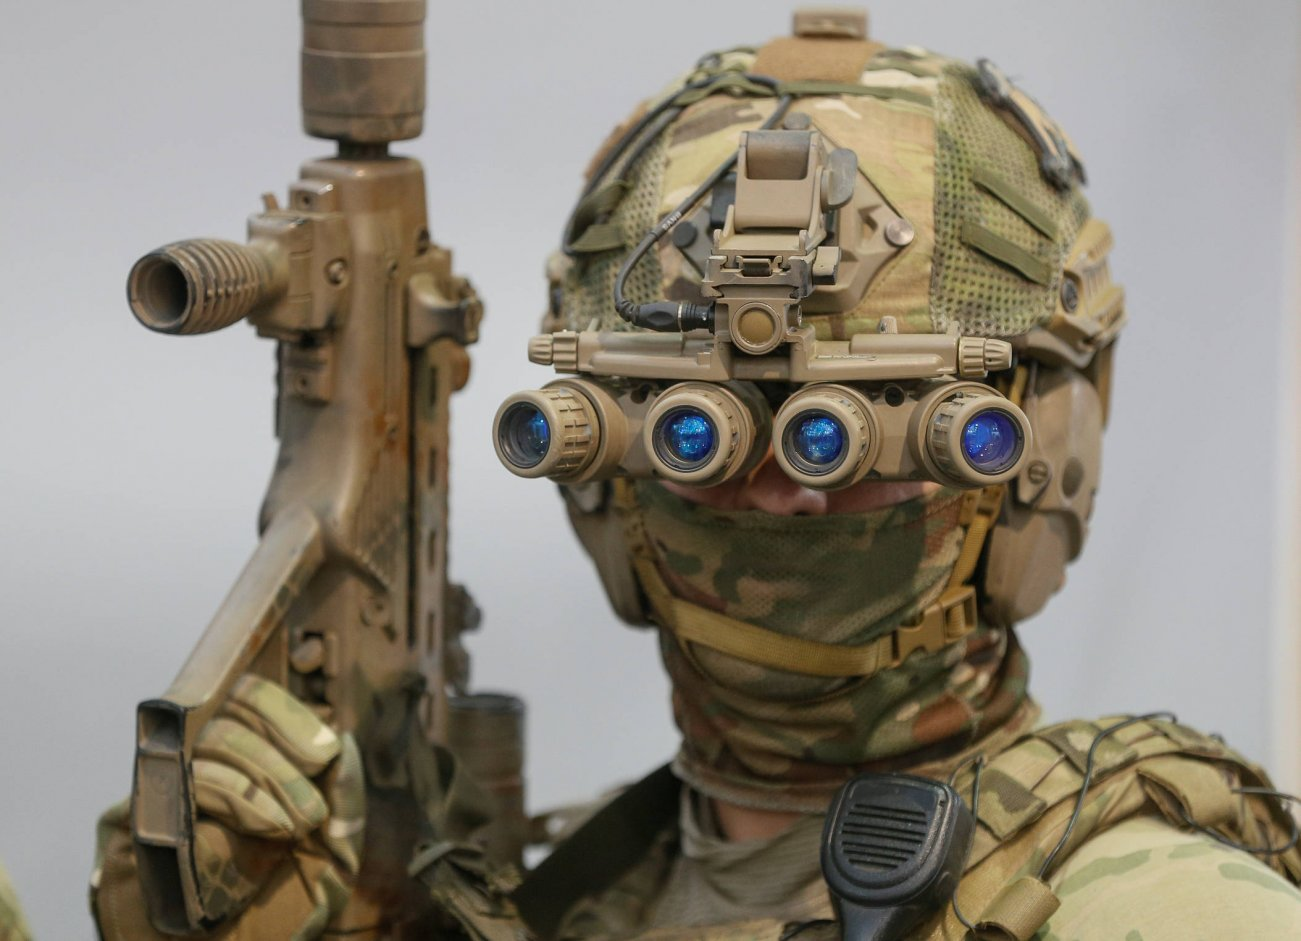 Cool Gear Like This Only Goes So Far. U.S. Special Forces Need Help.